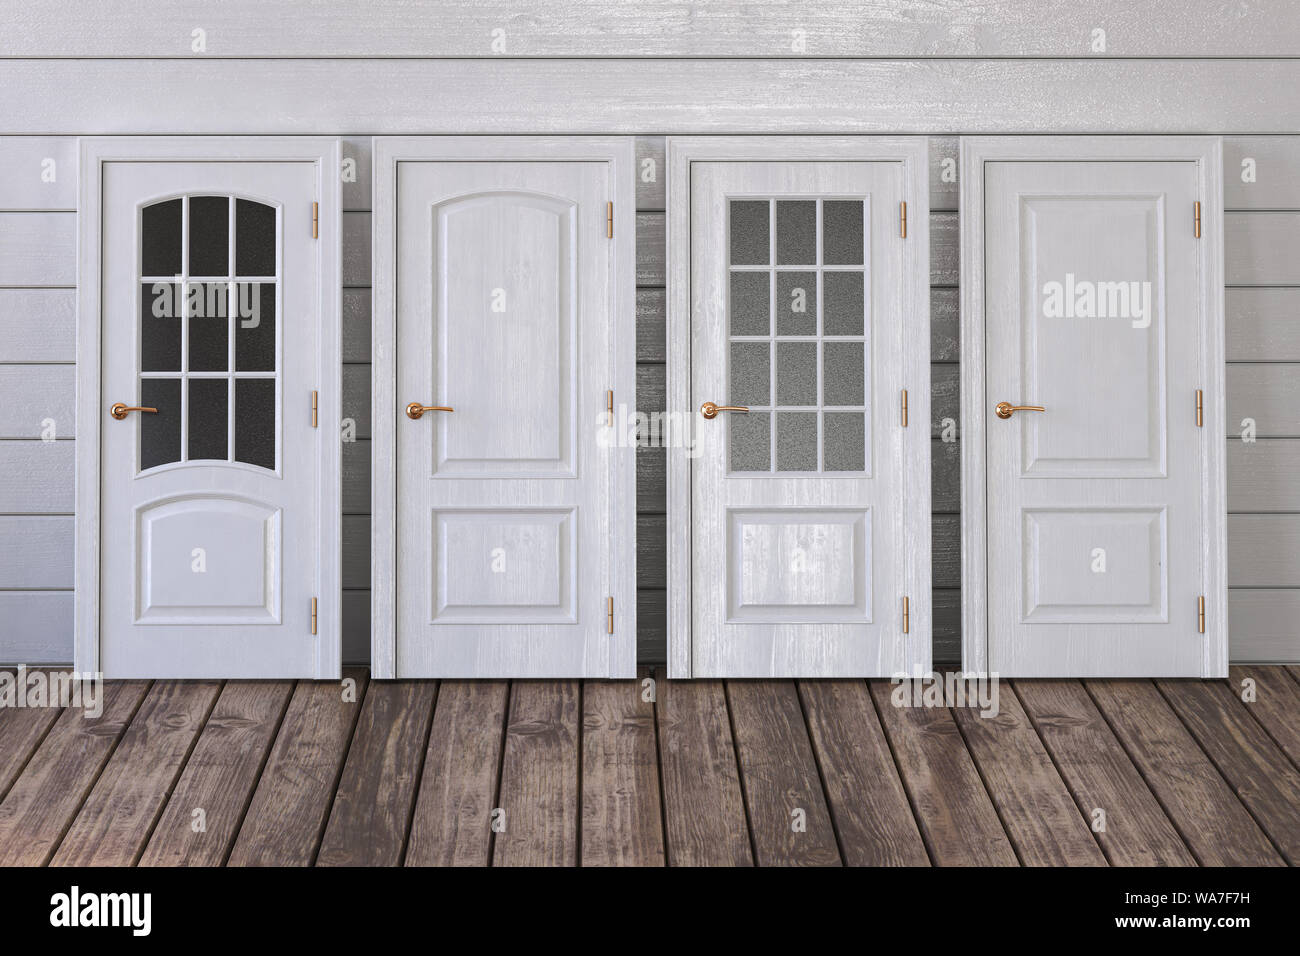 White Doors Of Different Types On White Wooden Background 3d